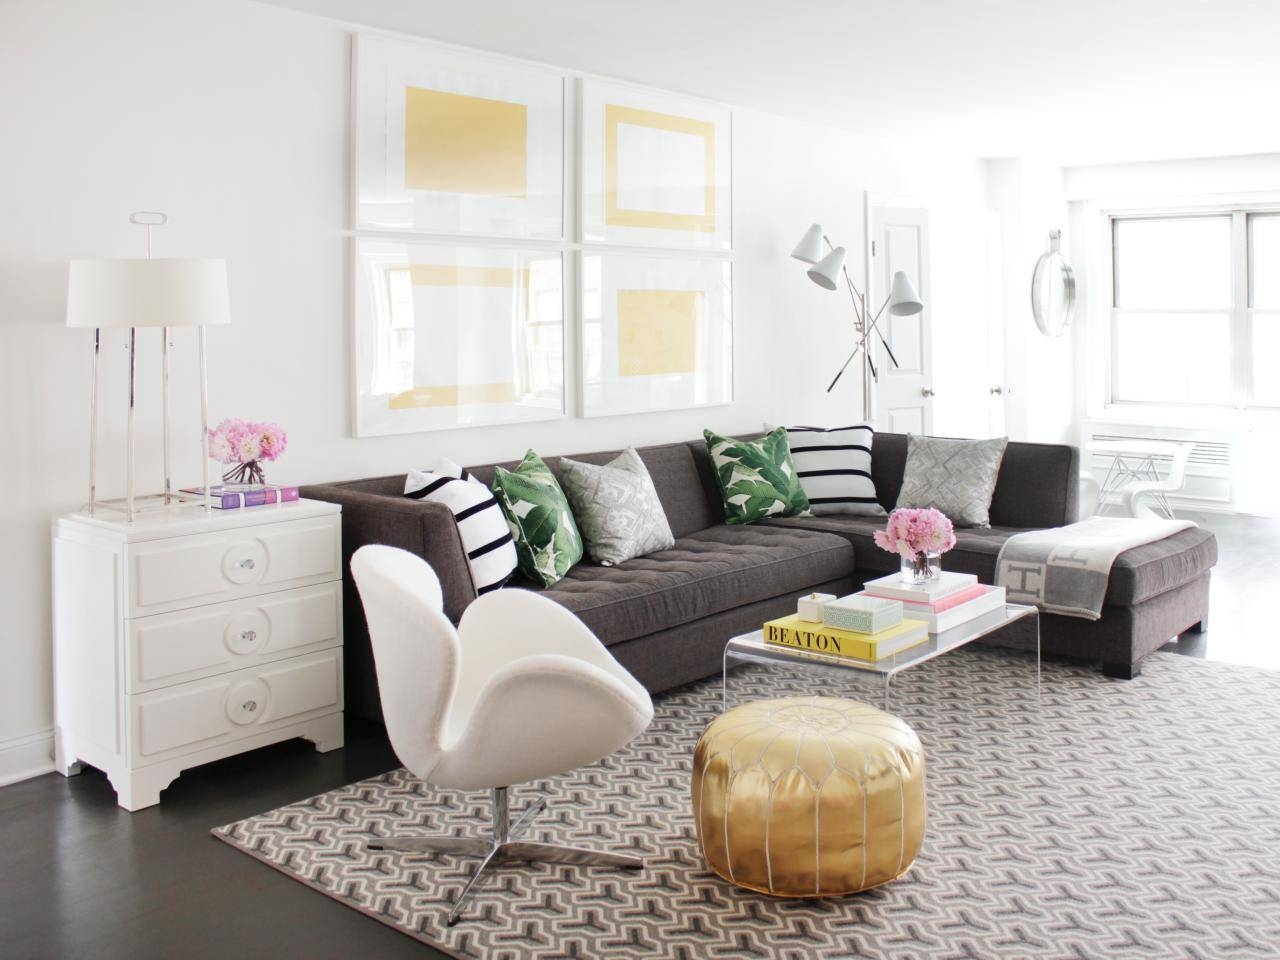 12 Living Room Ideas For A Grey Sectional | Hgtv's Decorating pertaining to Gray Sofas For Living Room (Image 2 of 15)